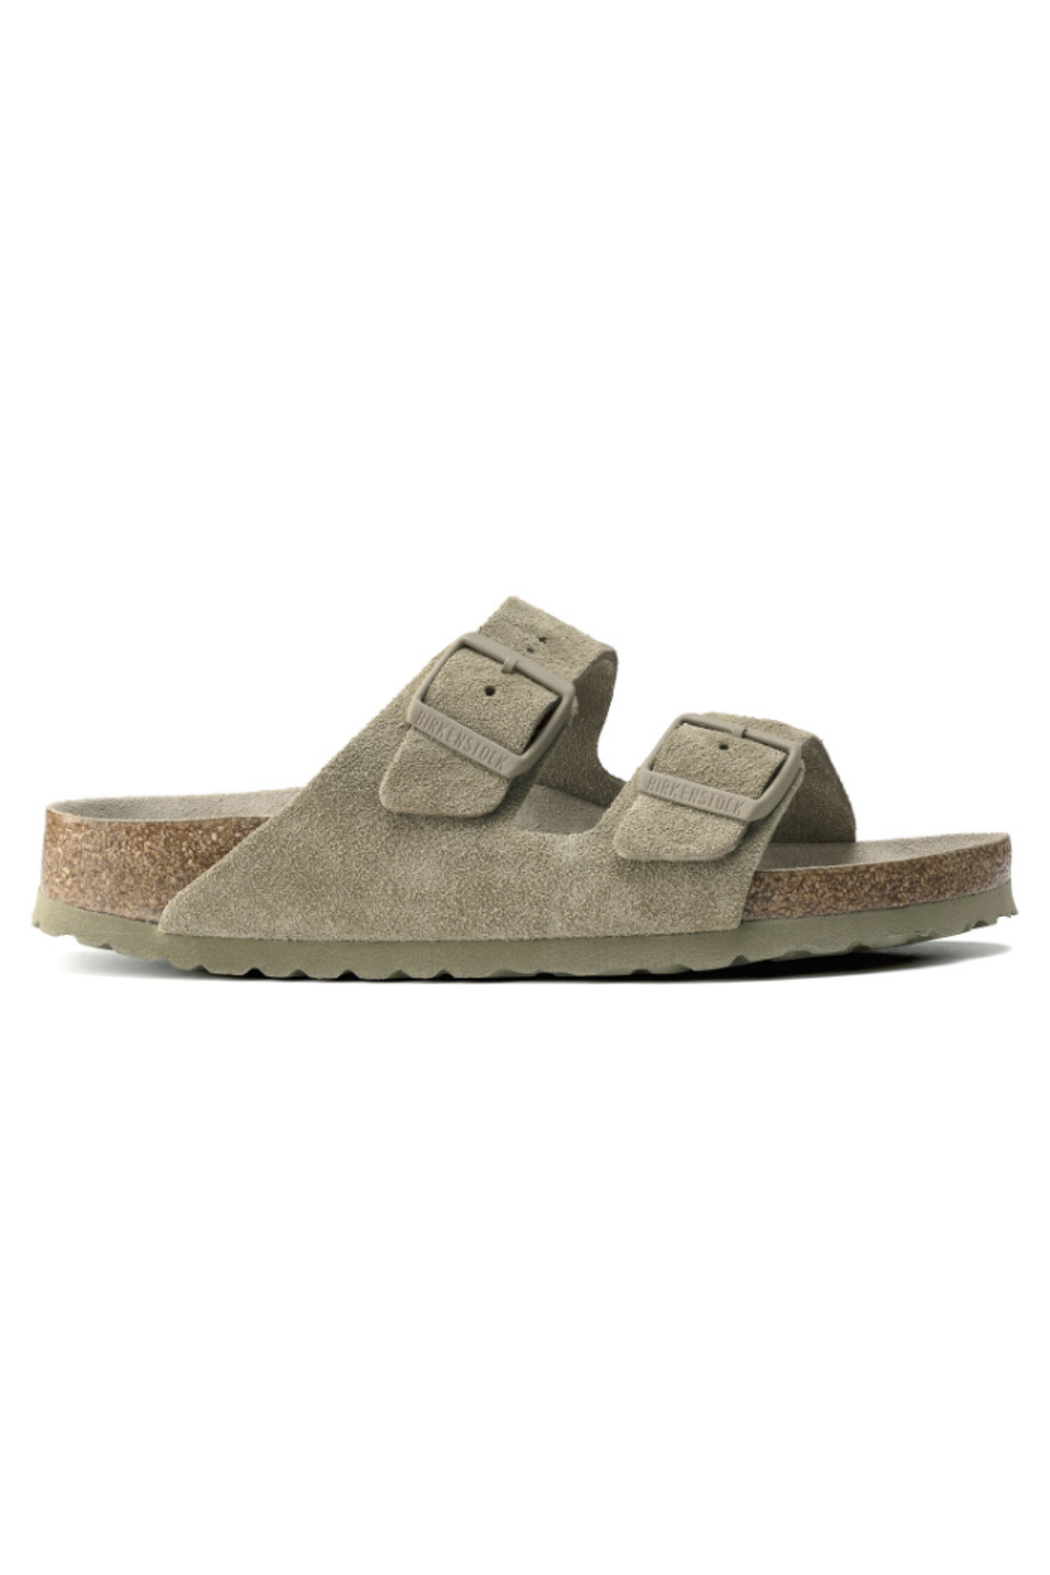 Birkenstock Arizona Soft Footbed Suede Leather in  Faded Khaki - Front Full Image